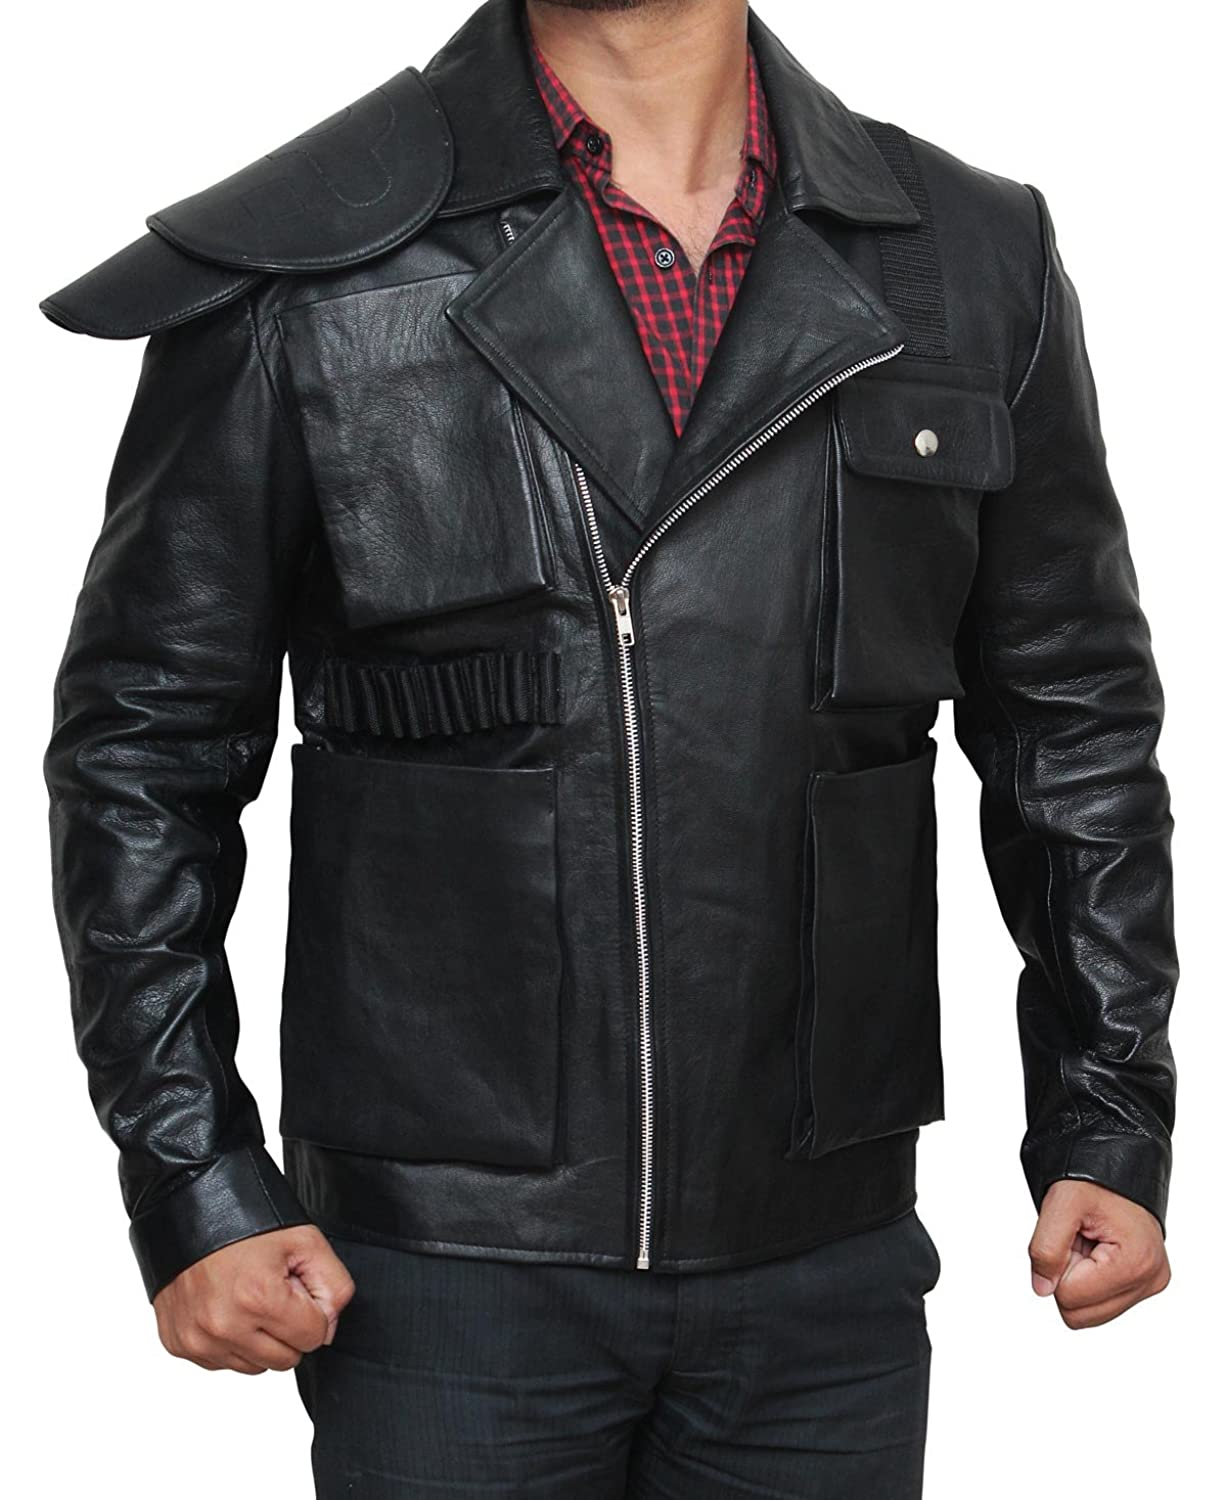 Mad Max Black Leather Motorcycle Jacket